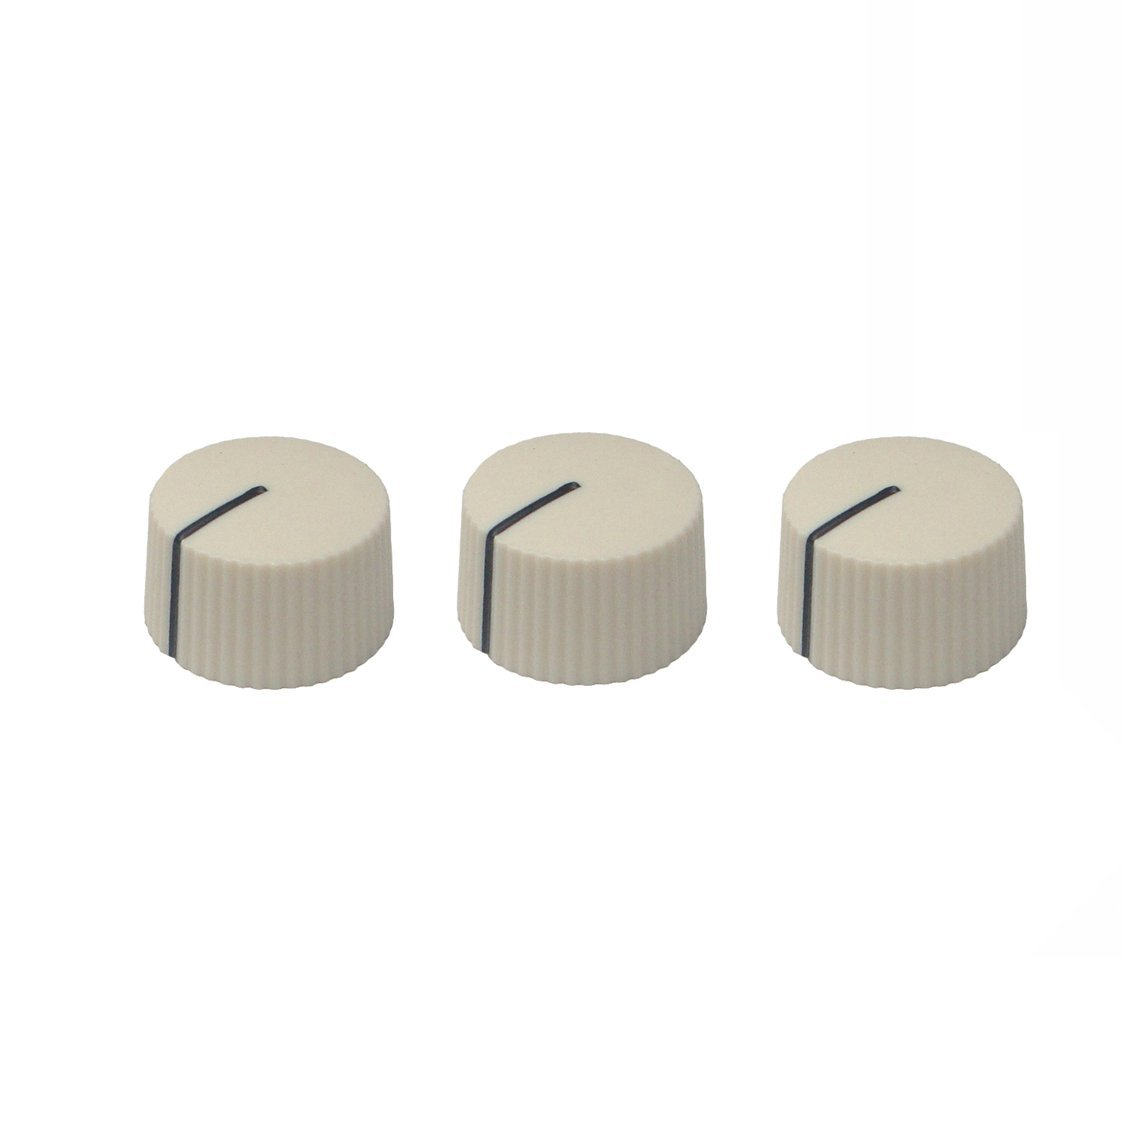 Guitar Pedal Effect Potentiometer Serrated Round Pointer Knob - Set of 3